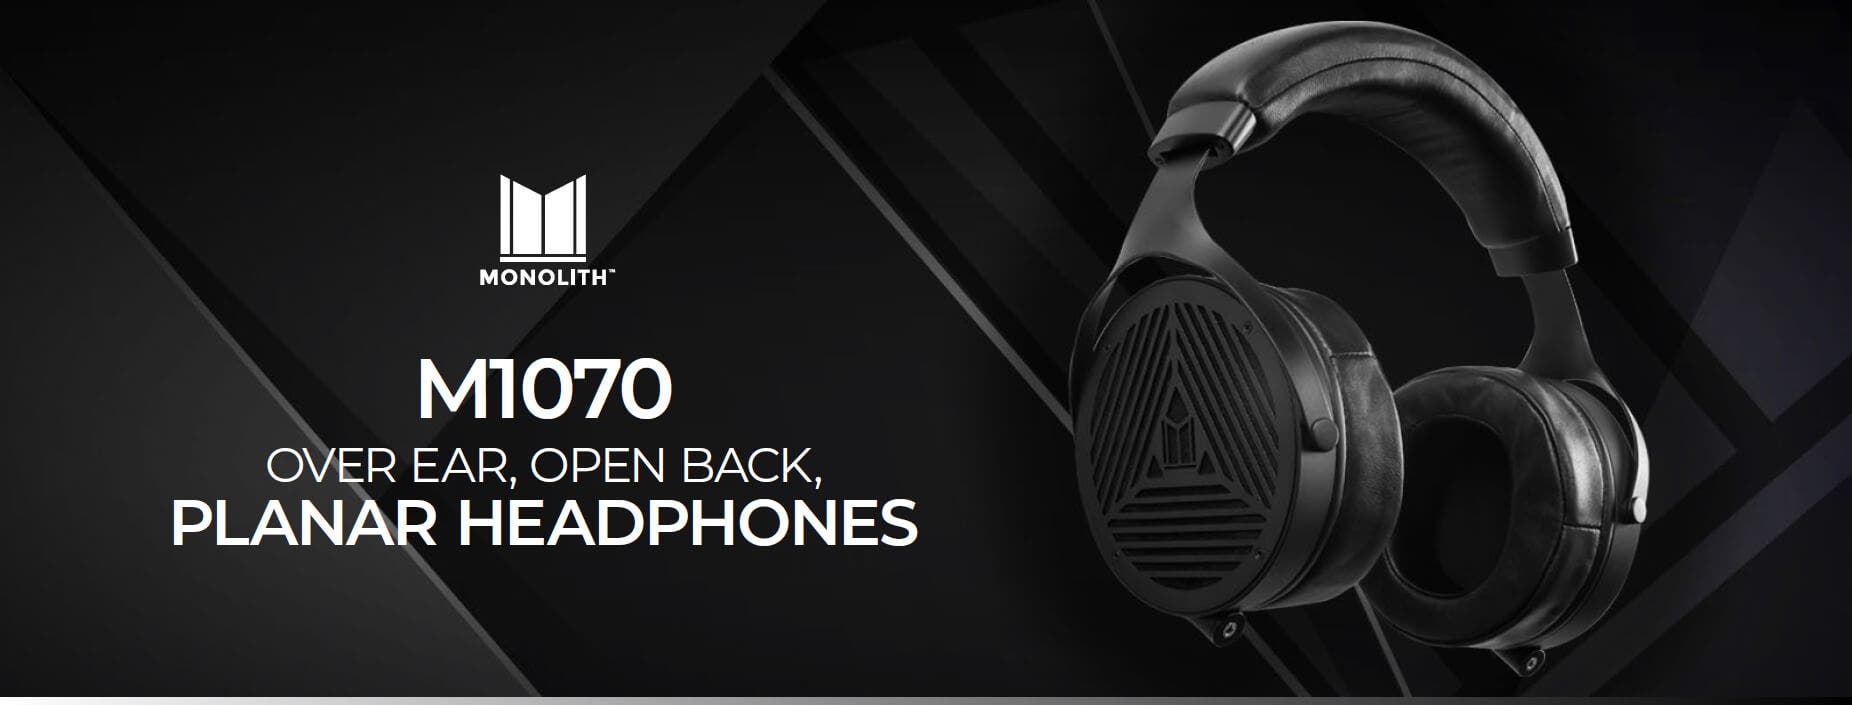 M1070 Headphones